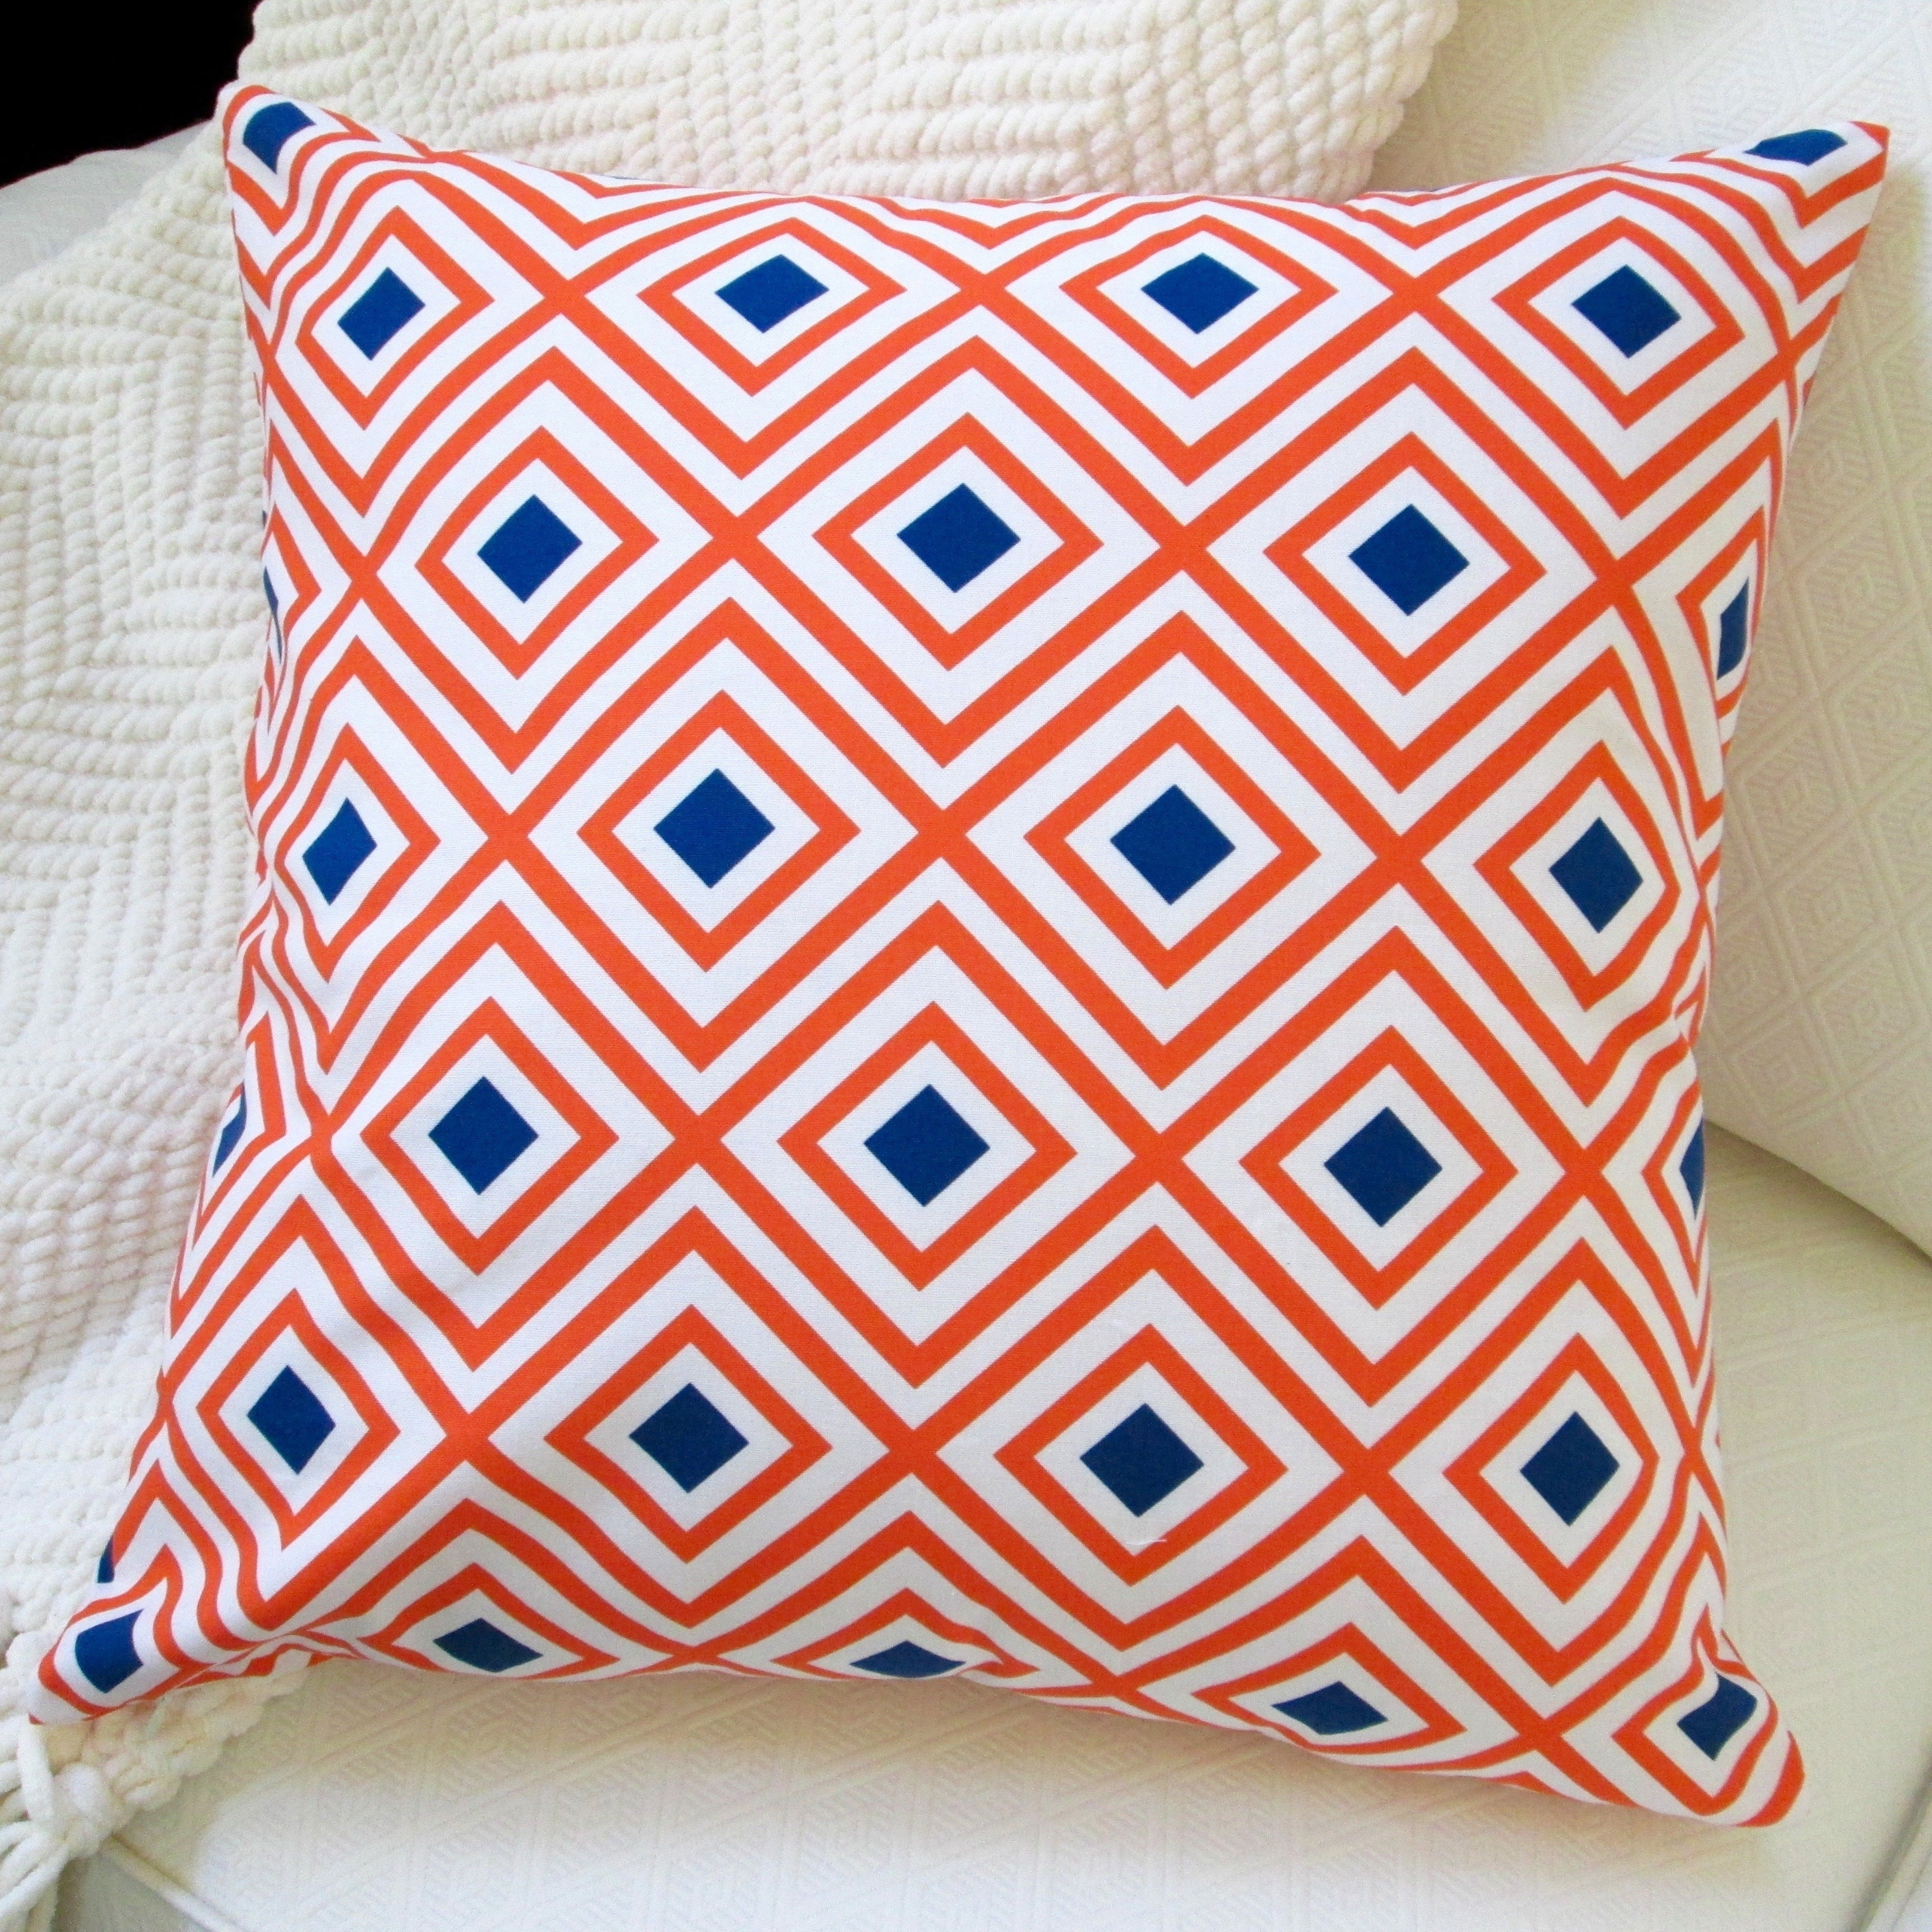 bedding bed large size sofa of decorative colored cushions on pillow pillows tags rose small full orange tag throw print sale